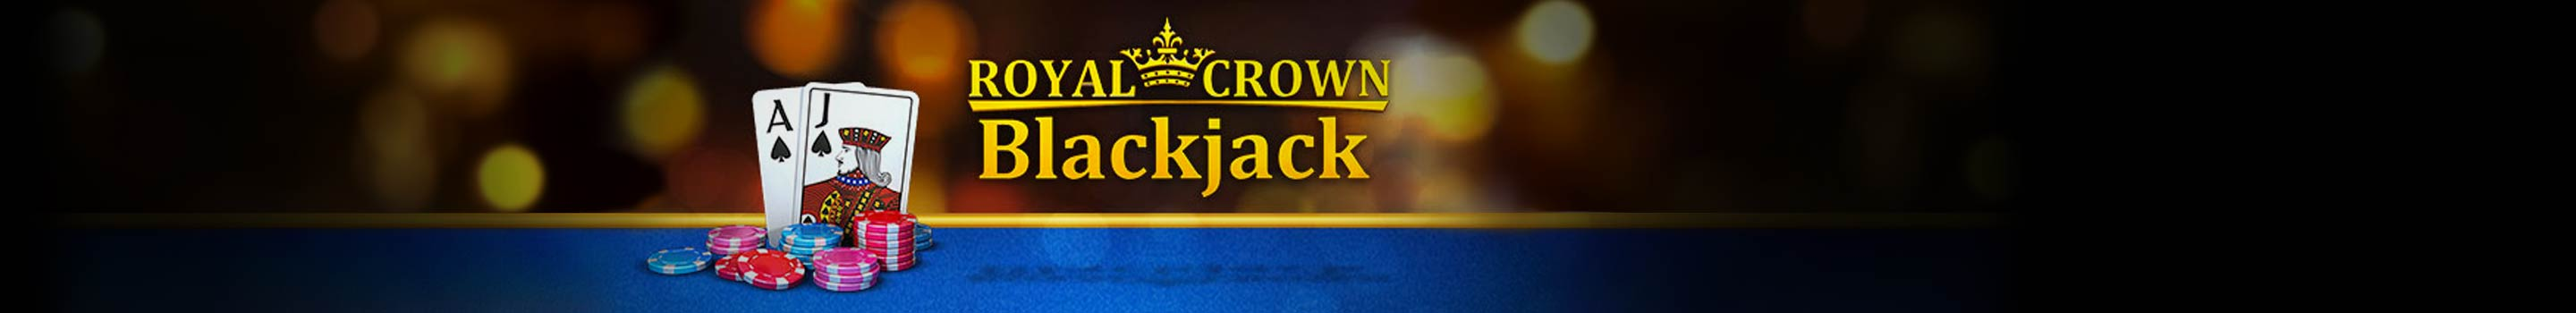 Royal Crown Blackjack